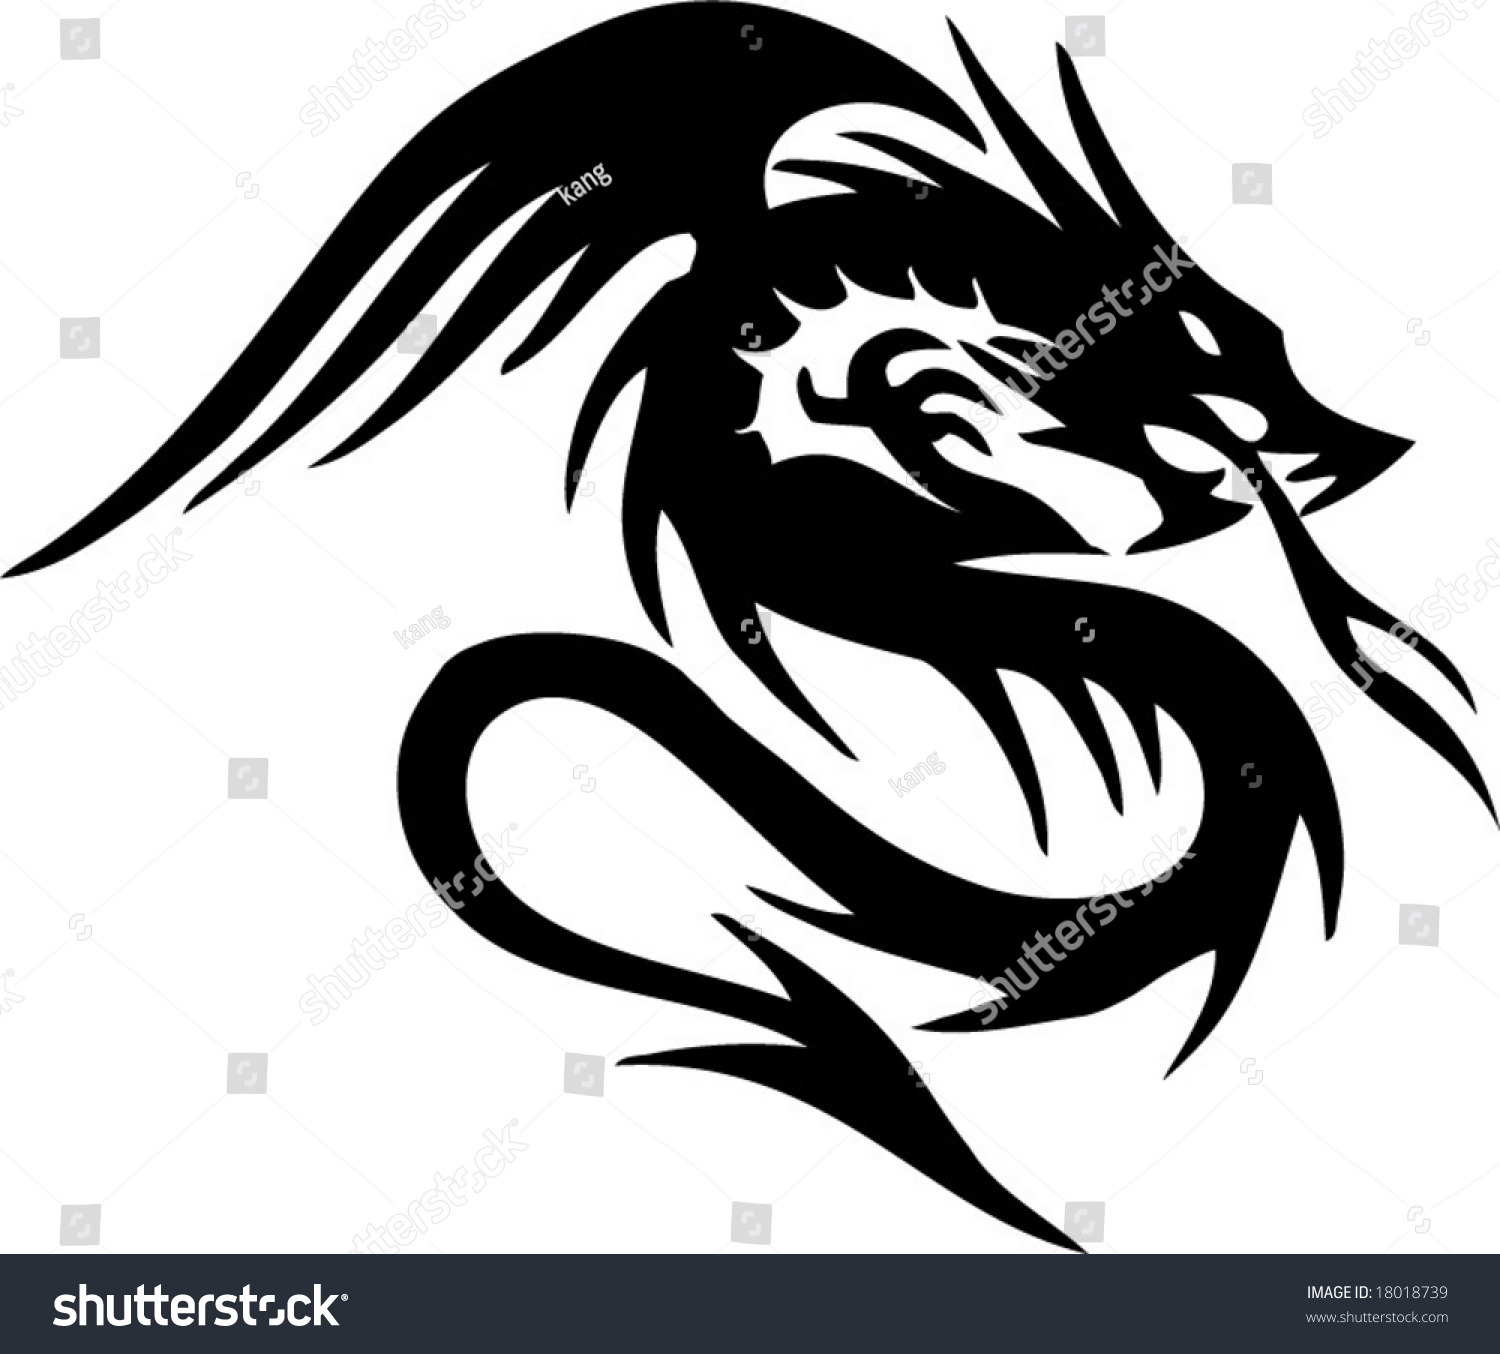 dragon tribal tattoo stock vector 18018739 shutterstock. Black Bedroom Furniture Sets. Home Design Ideas